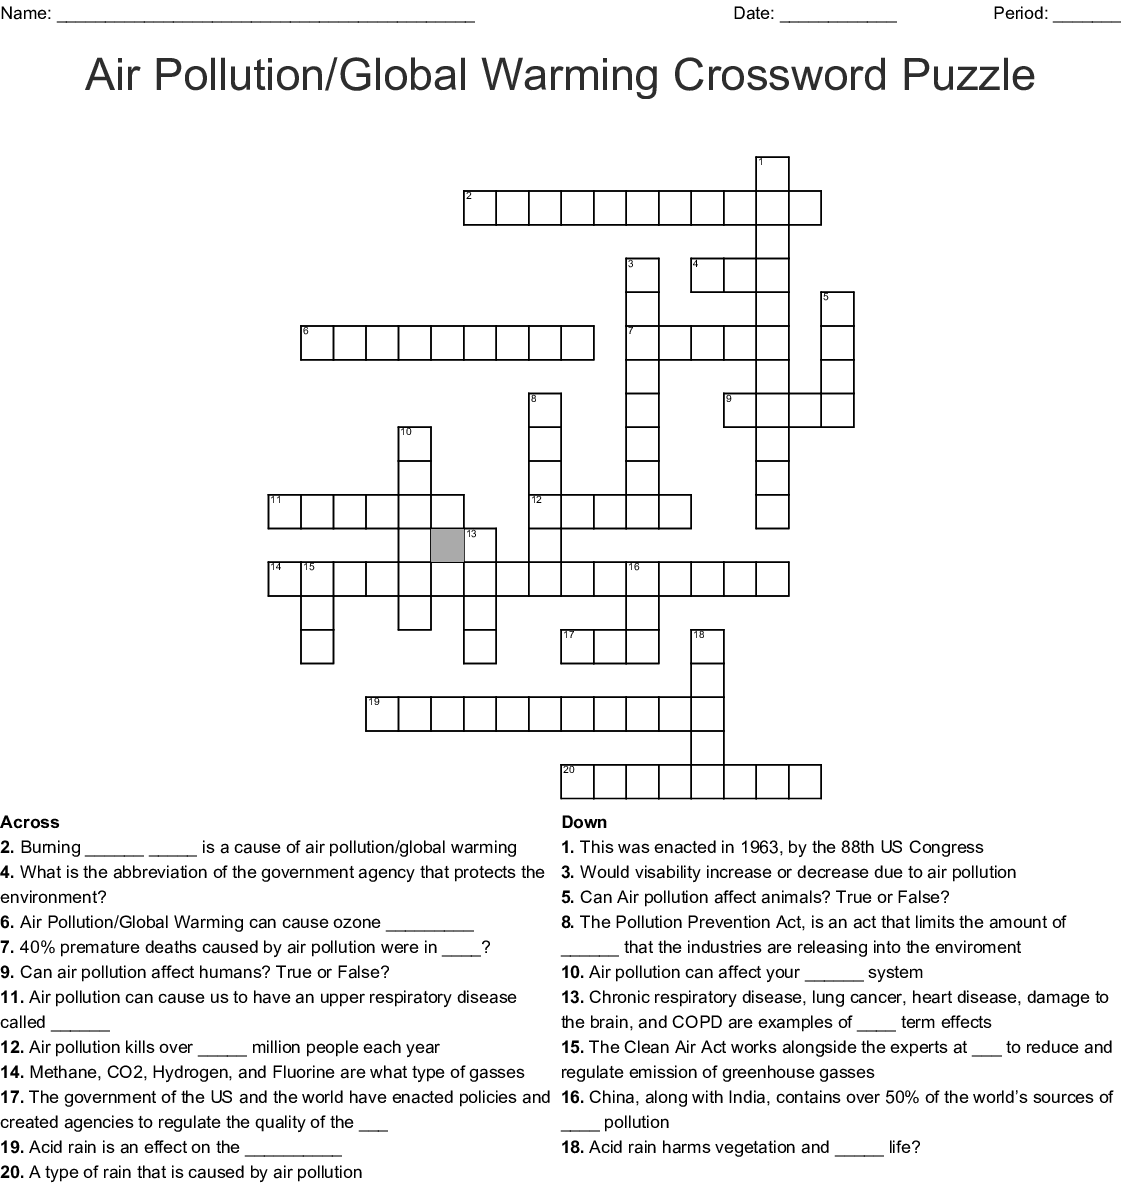 Air Pollution/Global Warming Crossword Puzzle - WordMint